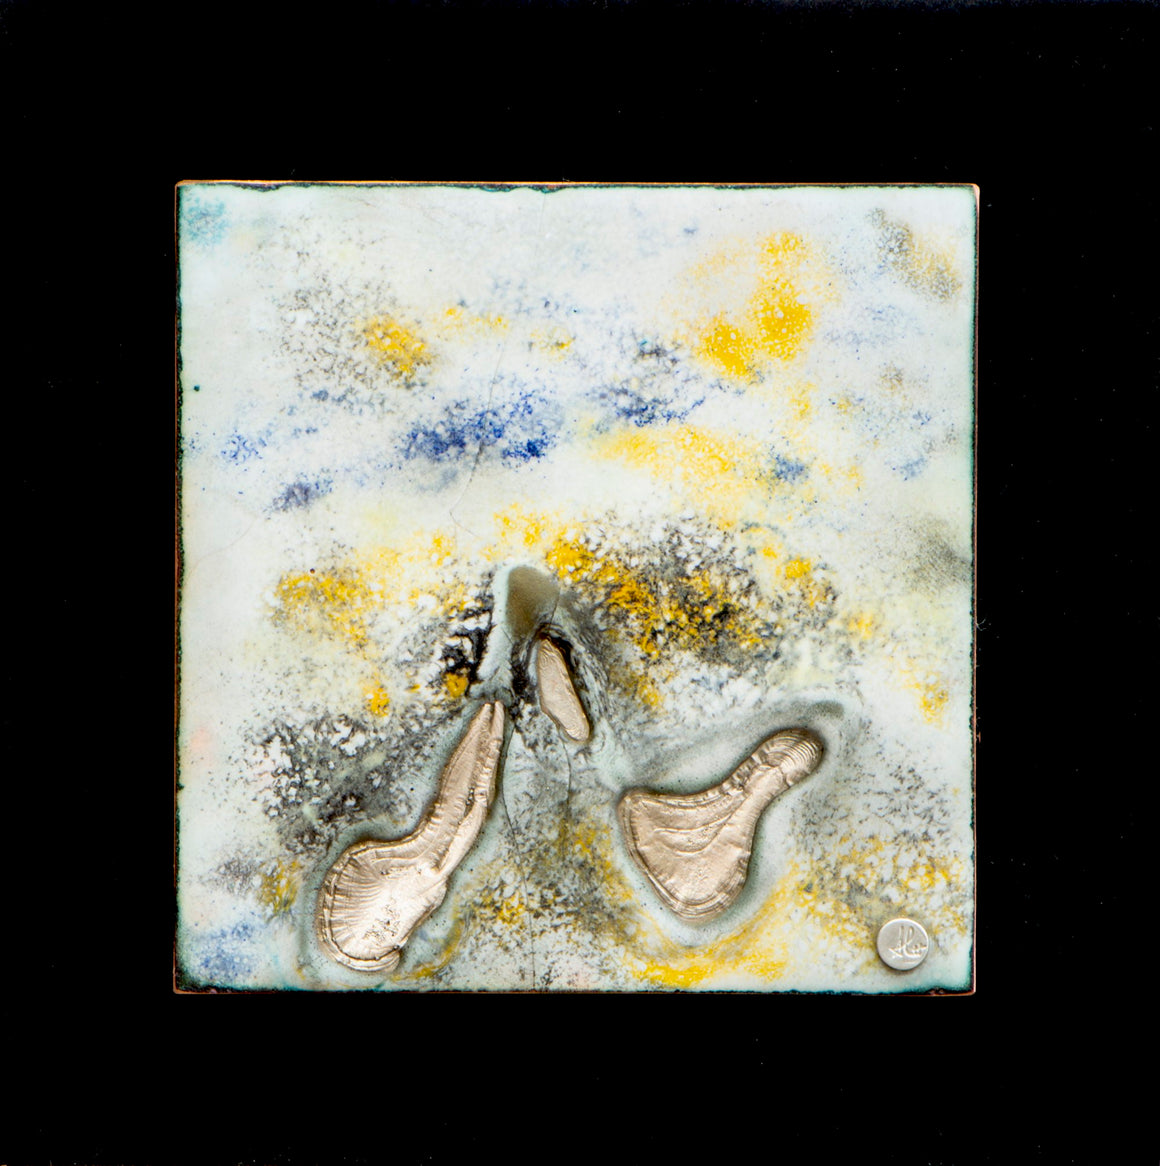 Birds in flight, 4 x 4 enamel  mounted on a 6x6 pvc board